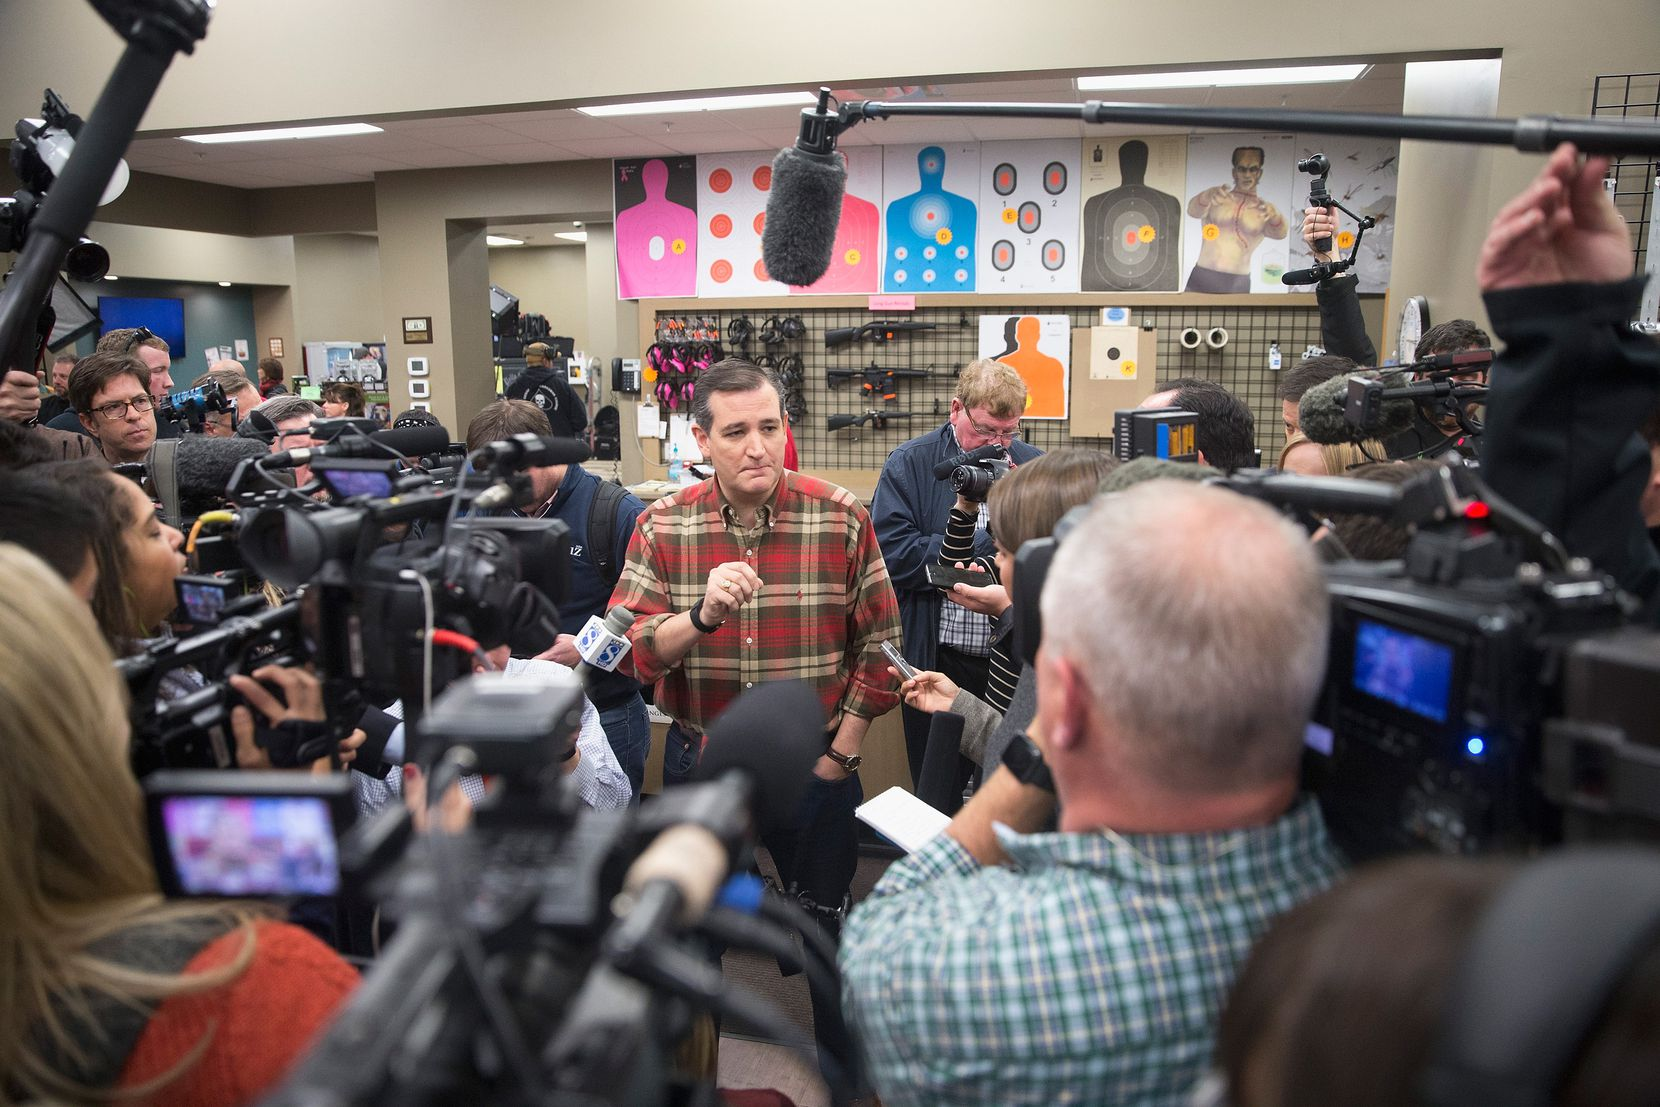 Sen. Ted Cruz campaigned for president at CrossRoads Shooting Sports gun shop and range on Dec. 4, 2015, in Johnston, Iowa.